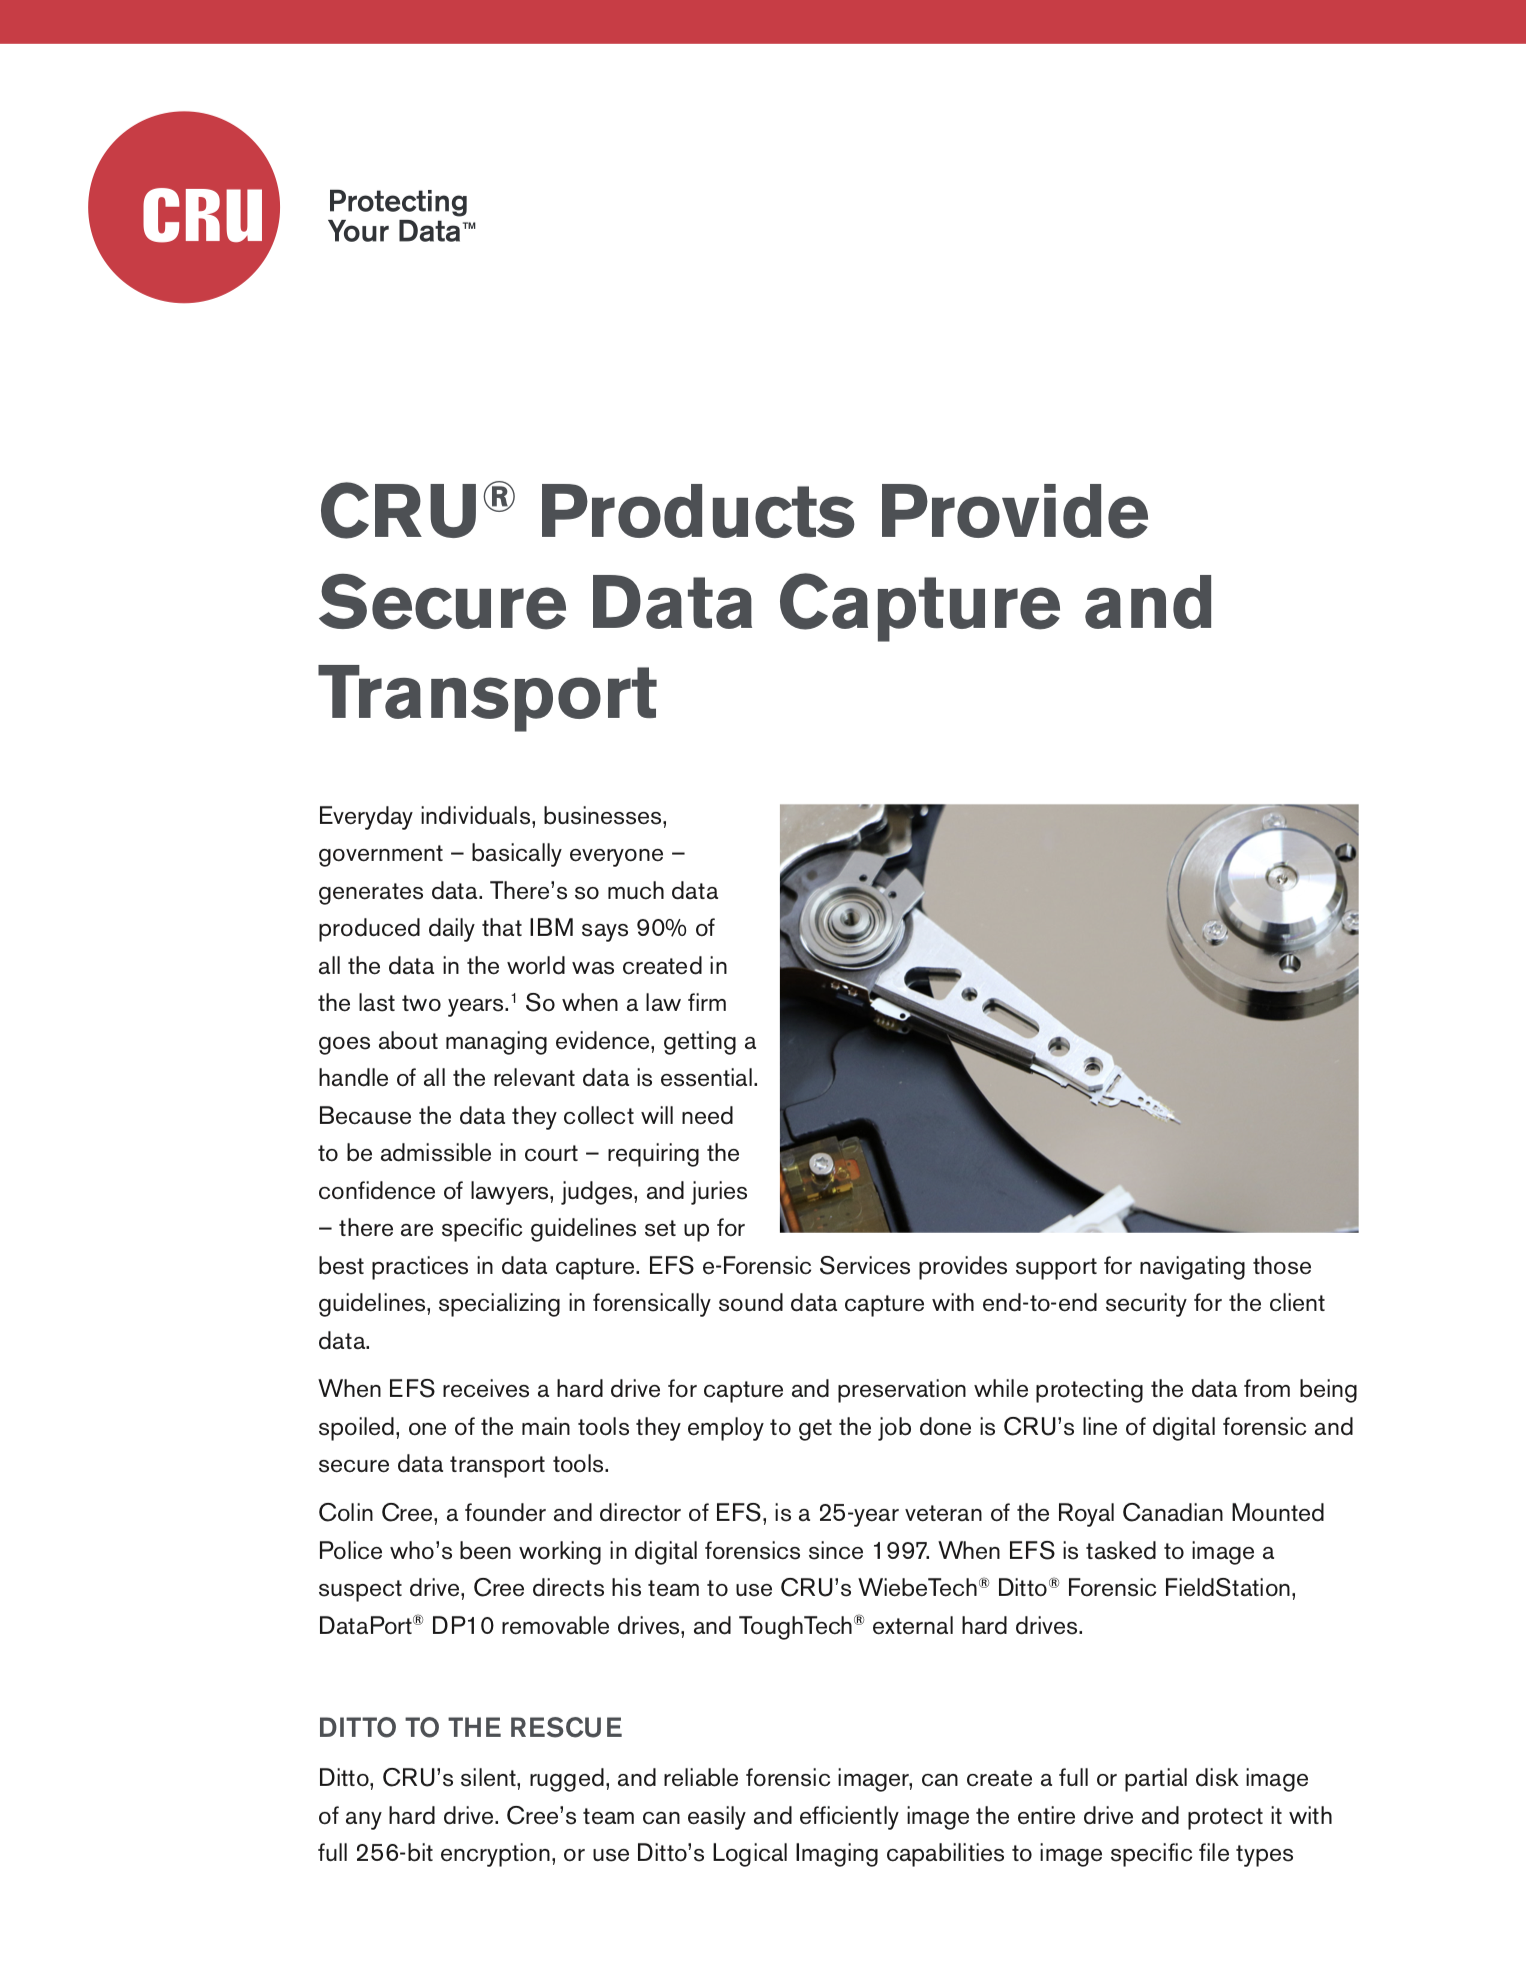 CRU_Products_Provide_Secure_Data_Capture_and_Transport.png